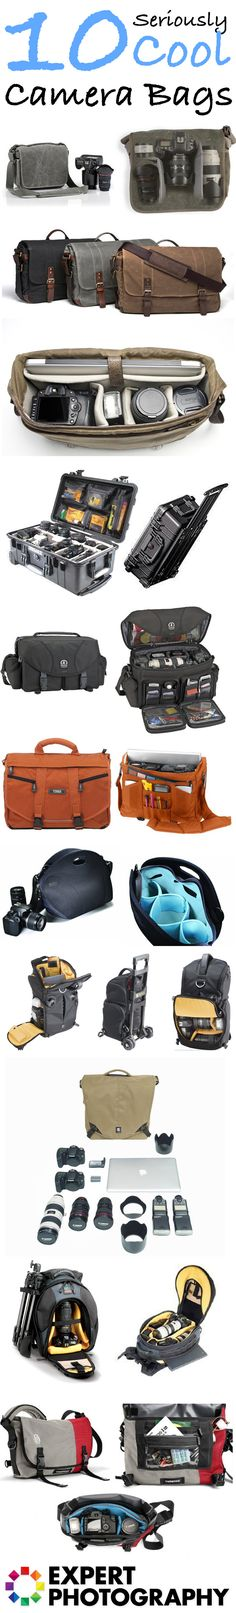 10 Seriously Cool Camera Bags